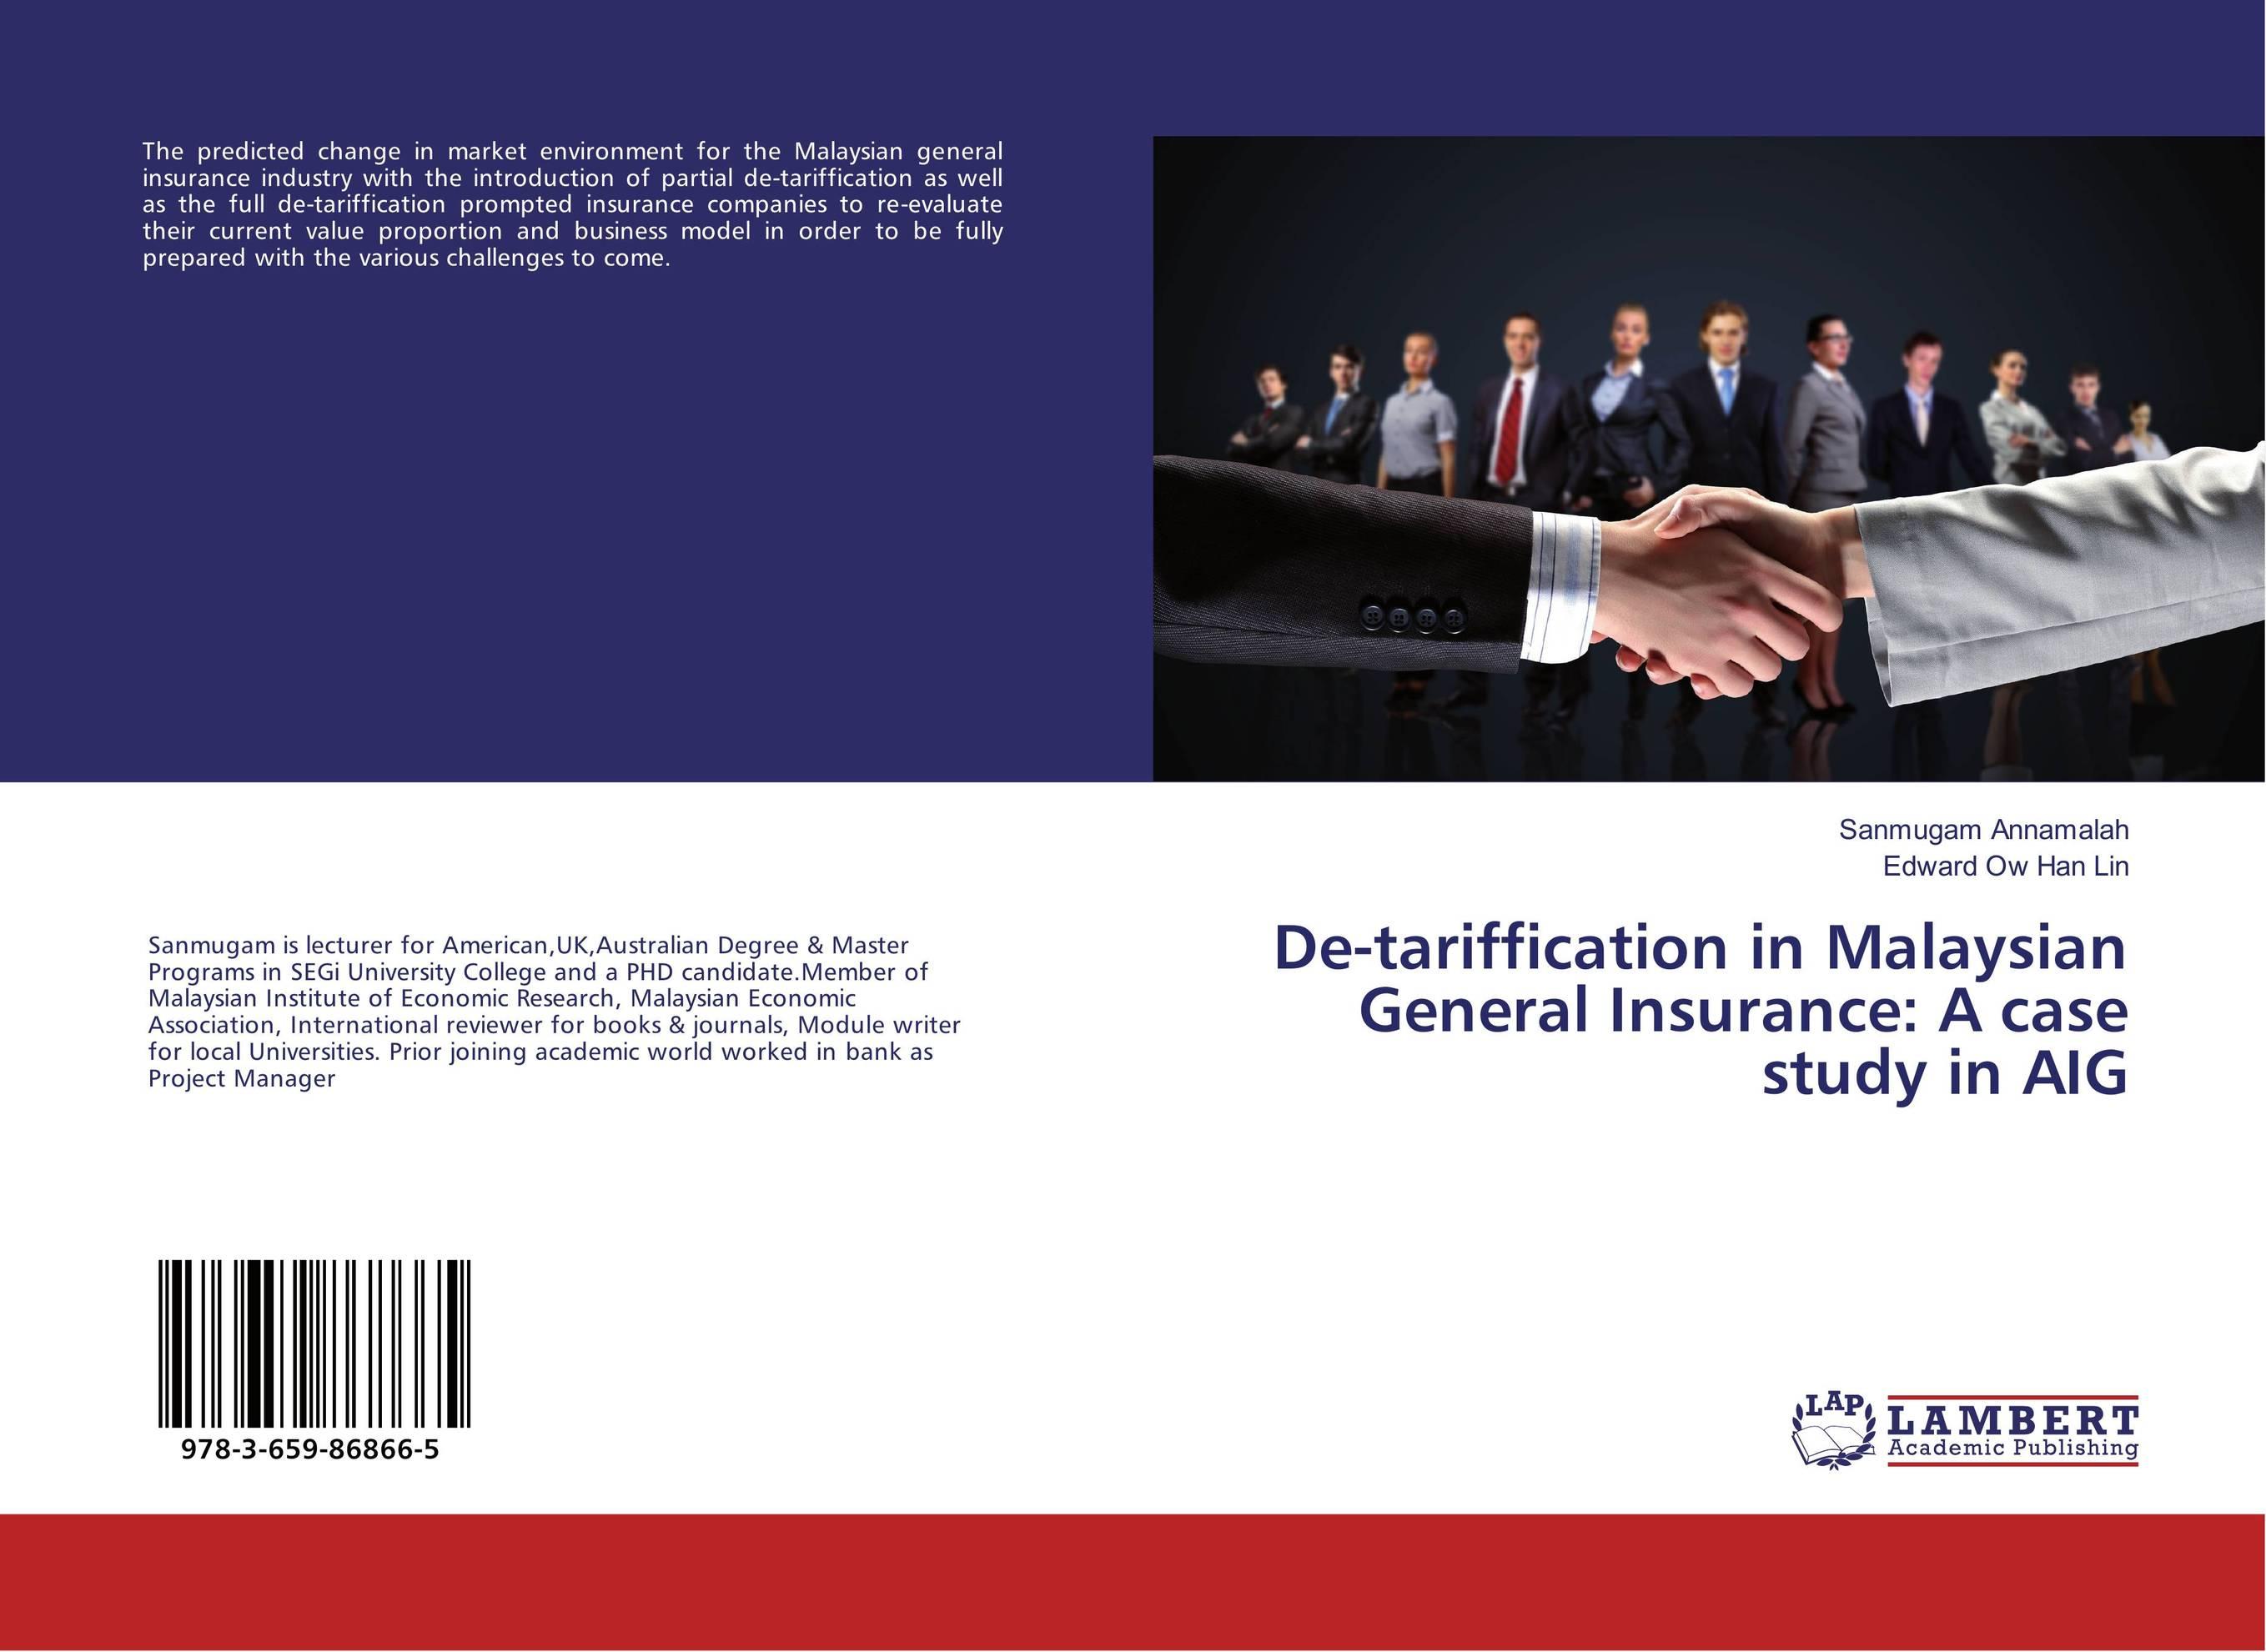 De-tariffication in Malaysian General Insurance: A case study in AIG financial performance analysis of general insurance companies in india